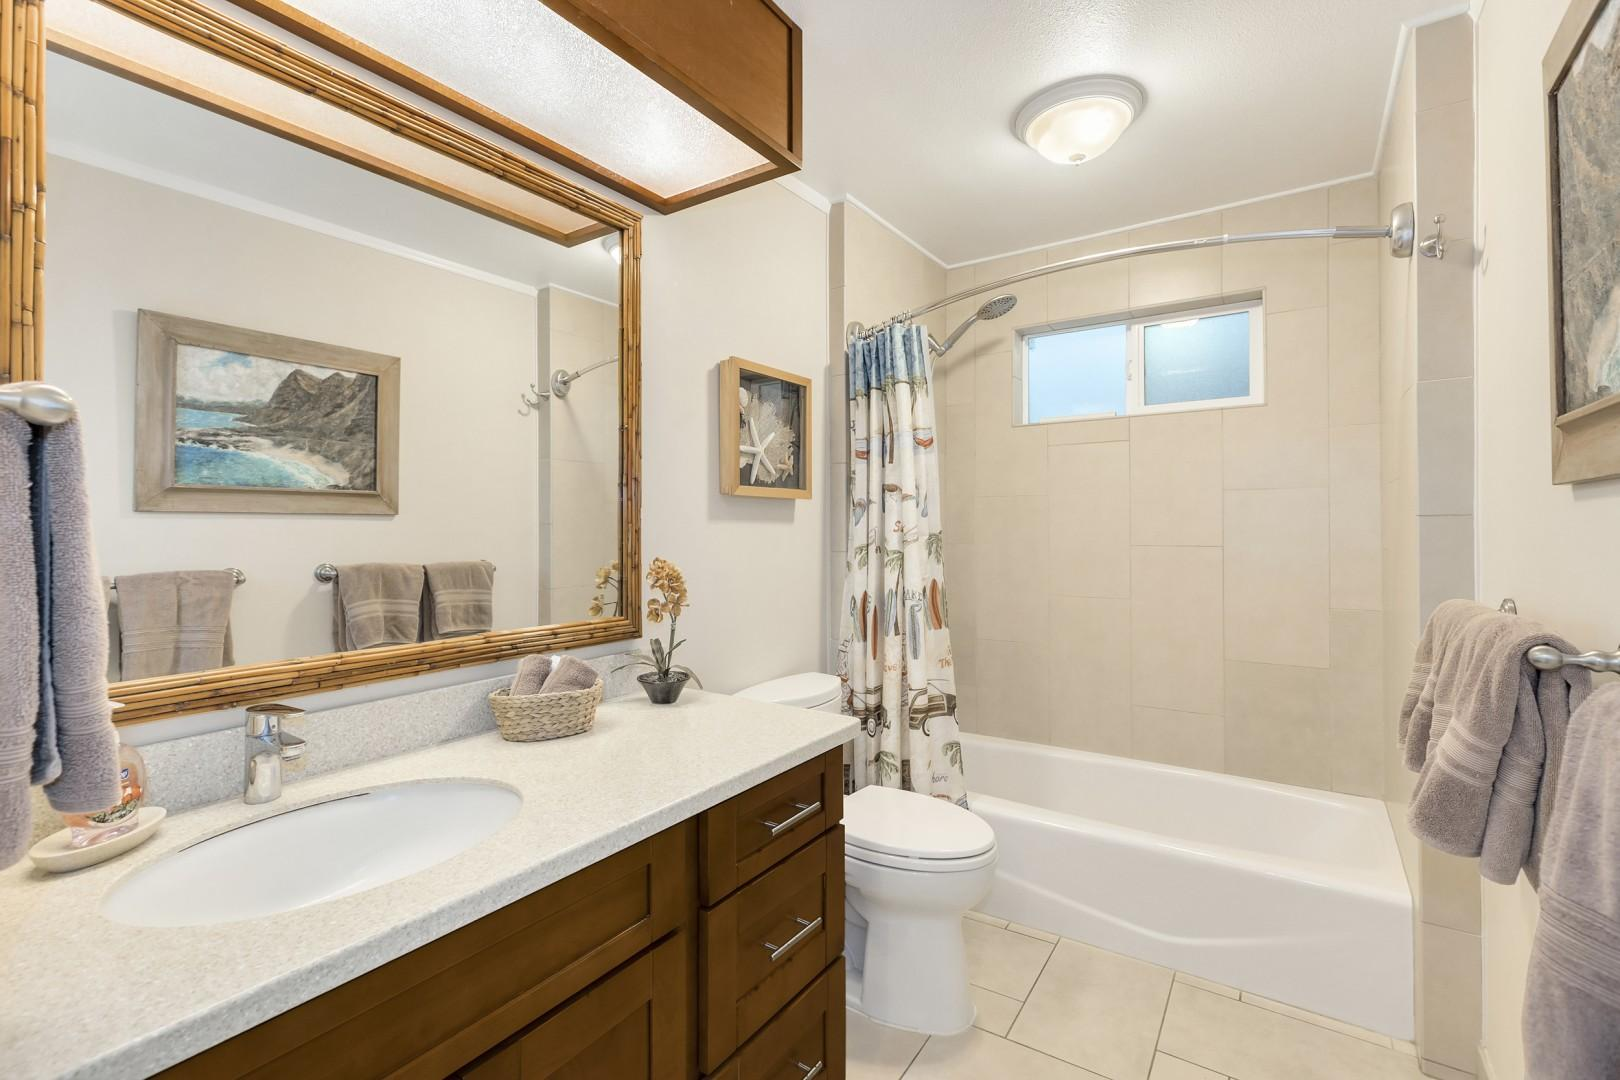 Downstairs guest bathroom with tub.